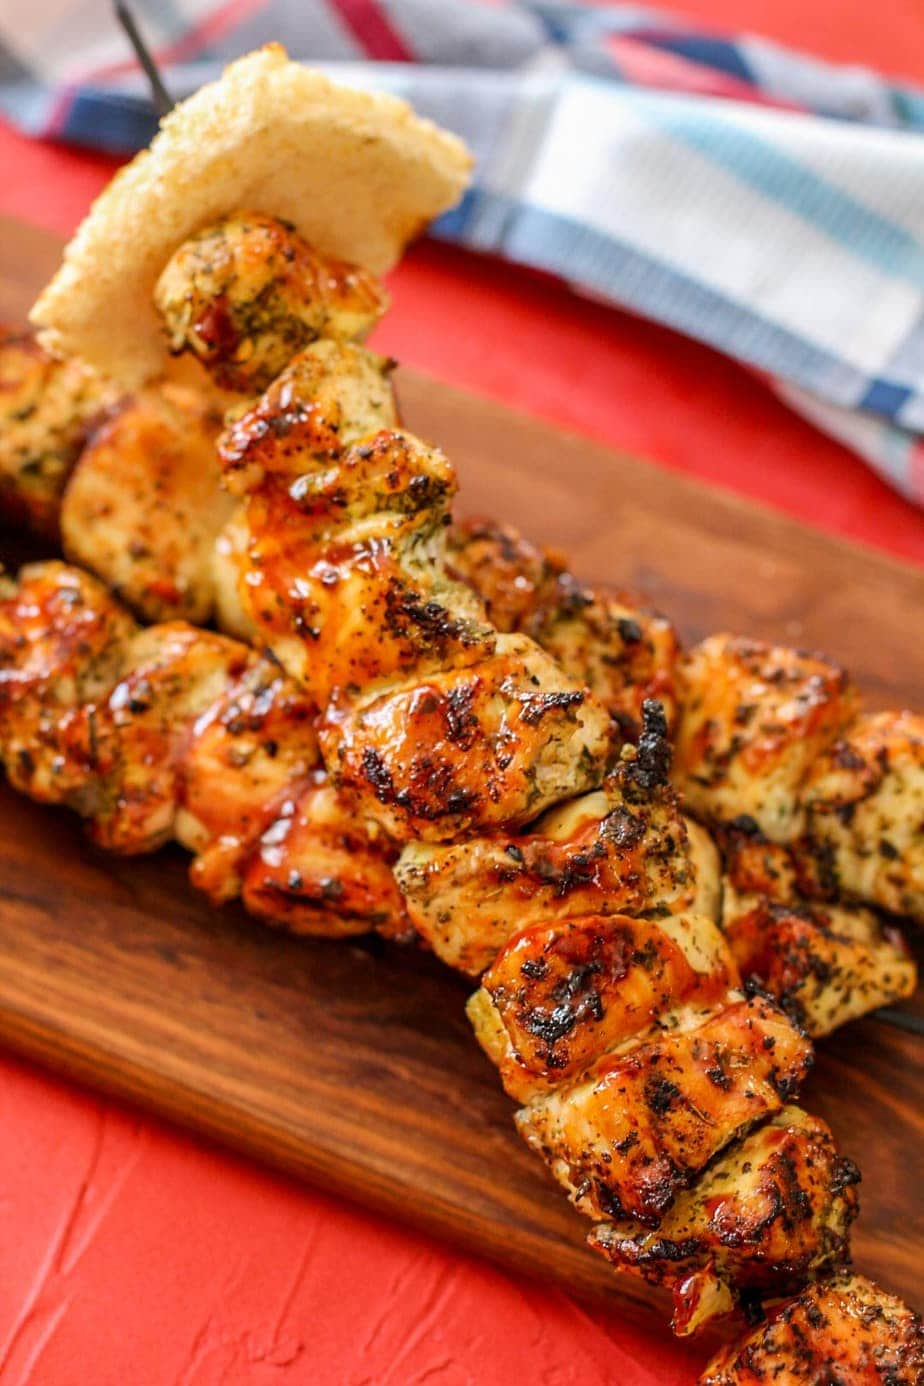 bbq kabob on a wooden board